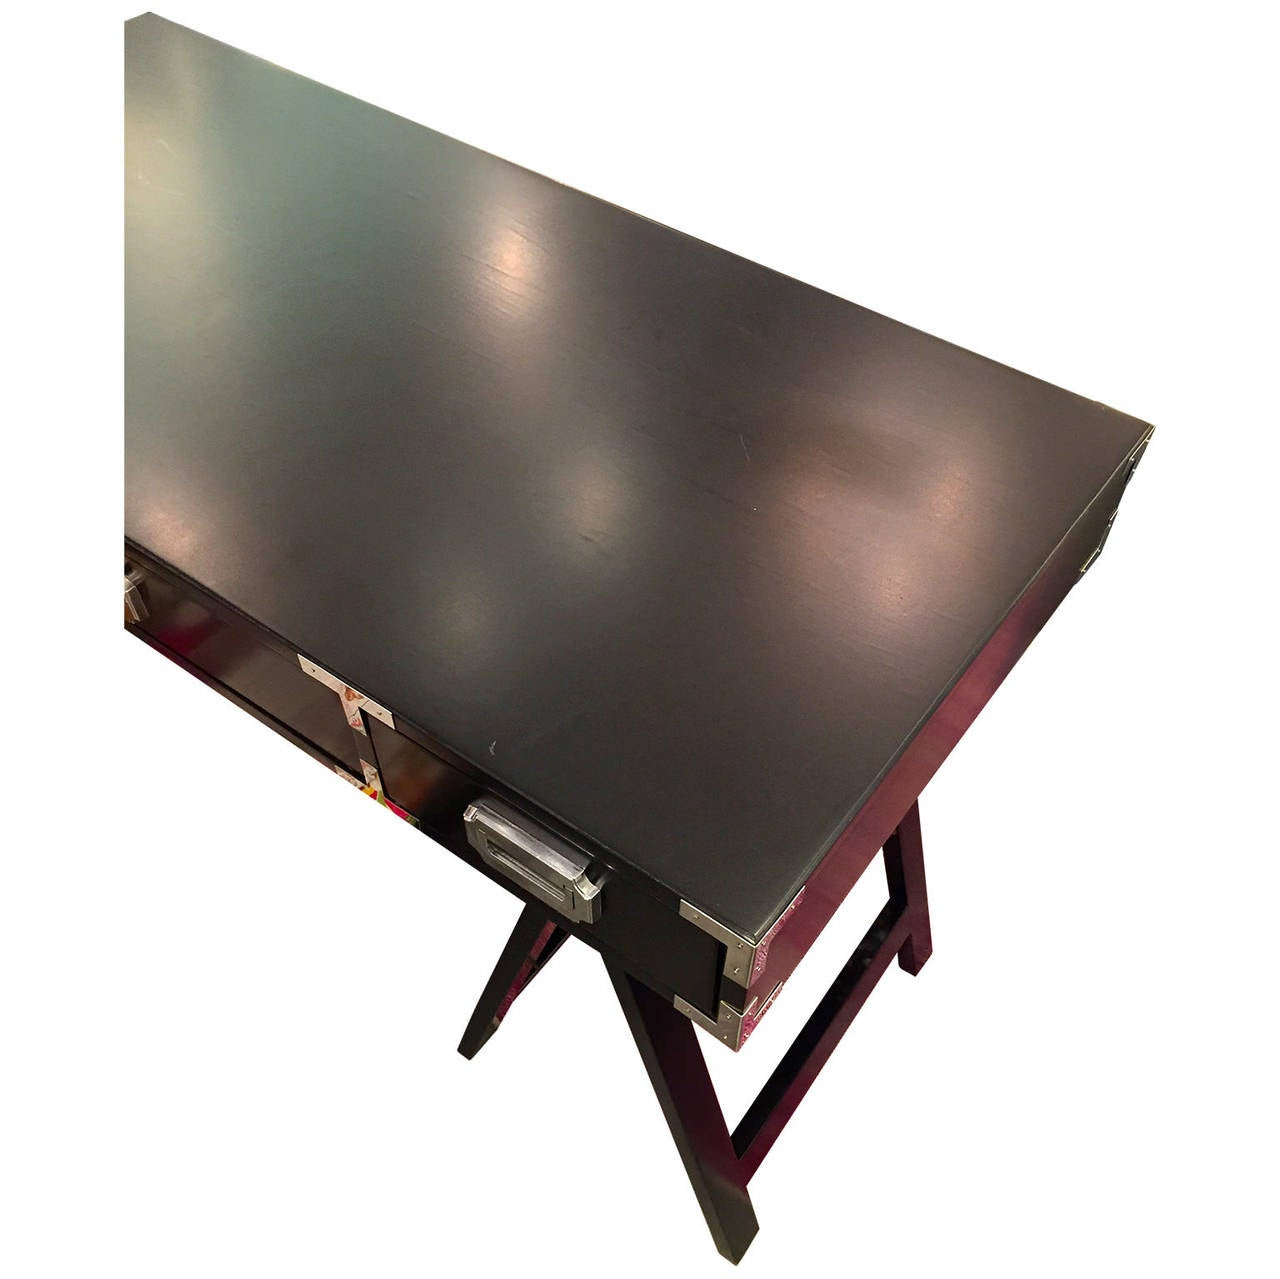 American Mid Century Modern Black Lacquer with Chrome & Brass Hardware Campaign Desk For Sale